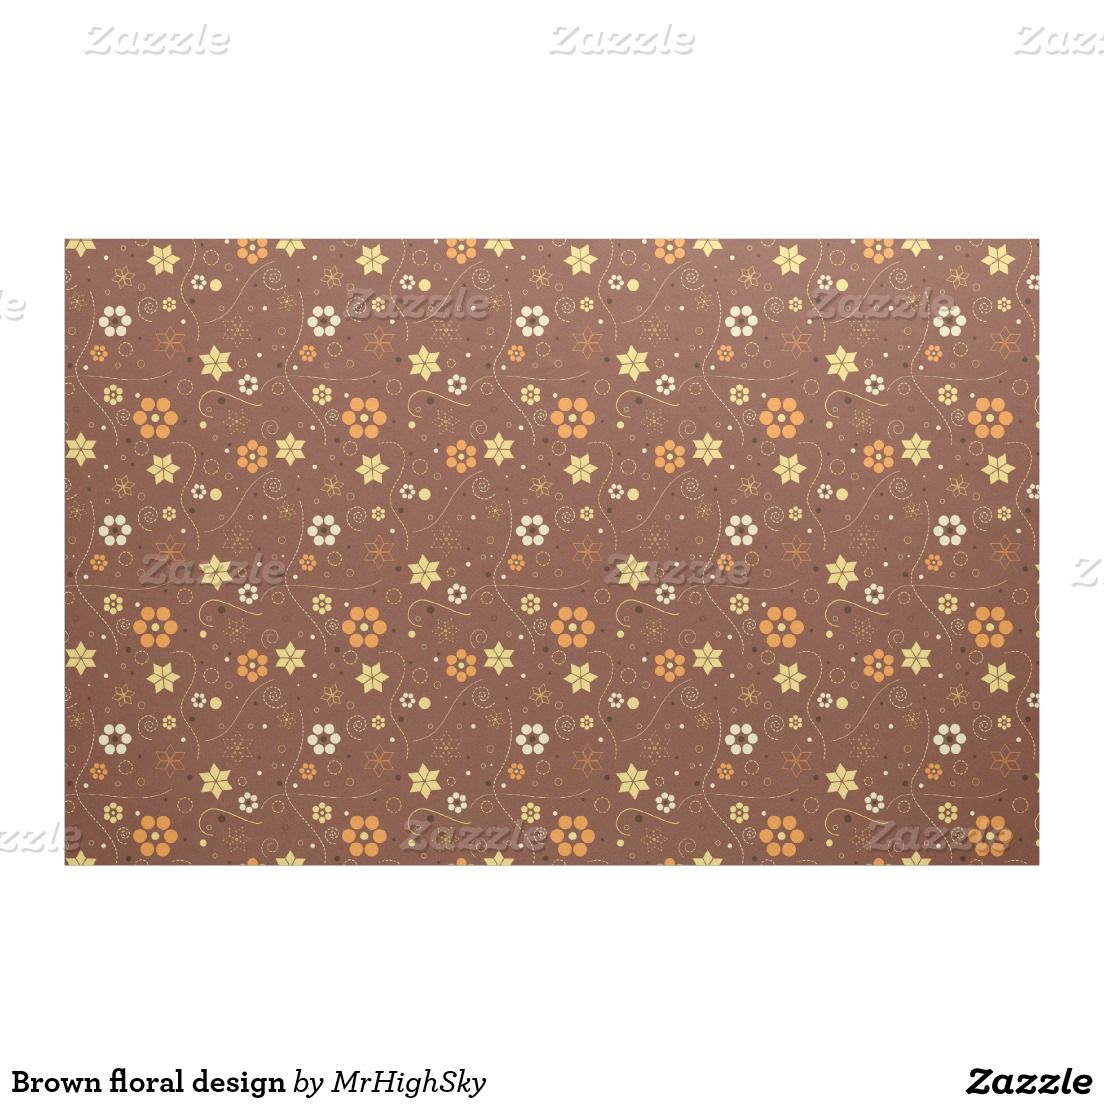 Brown floral design fabric